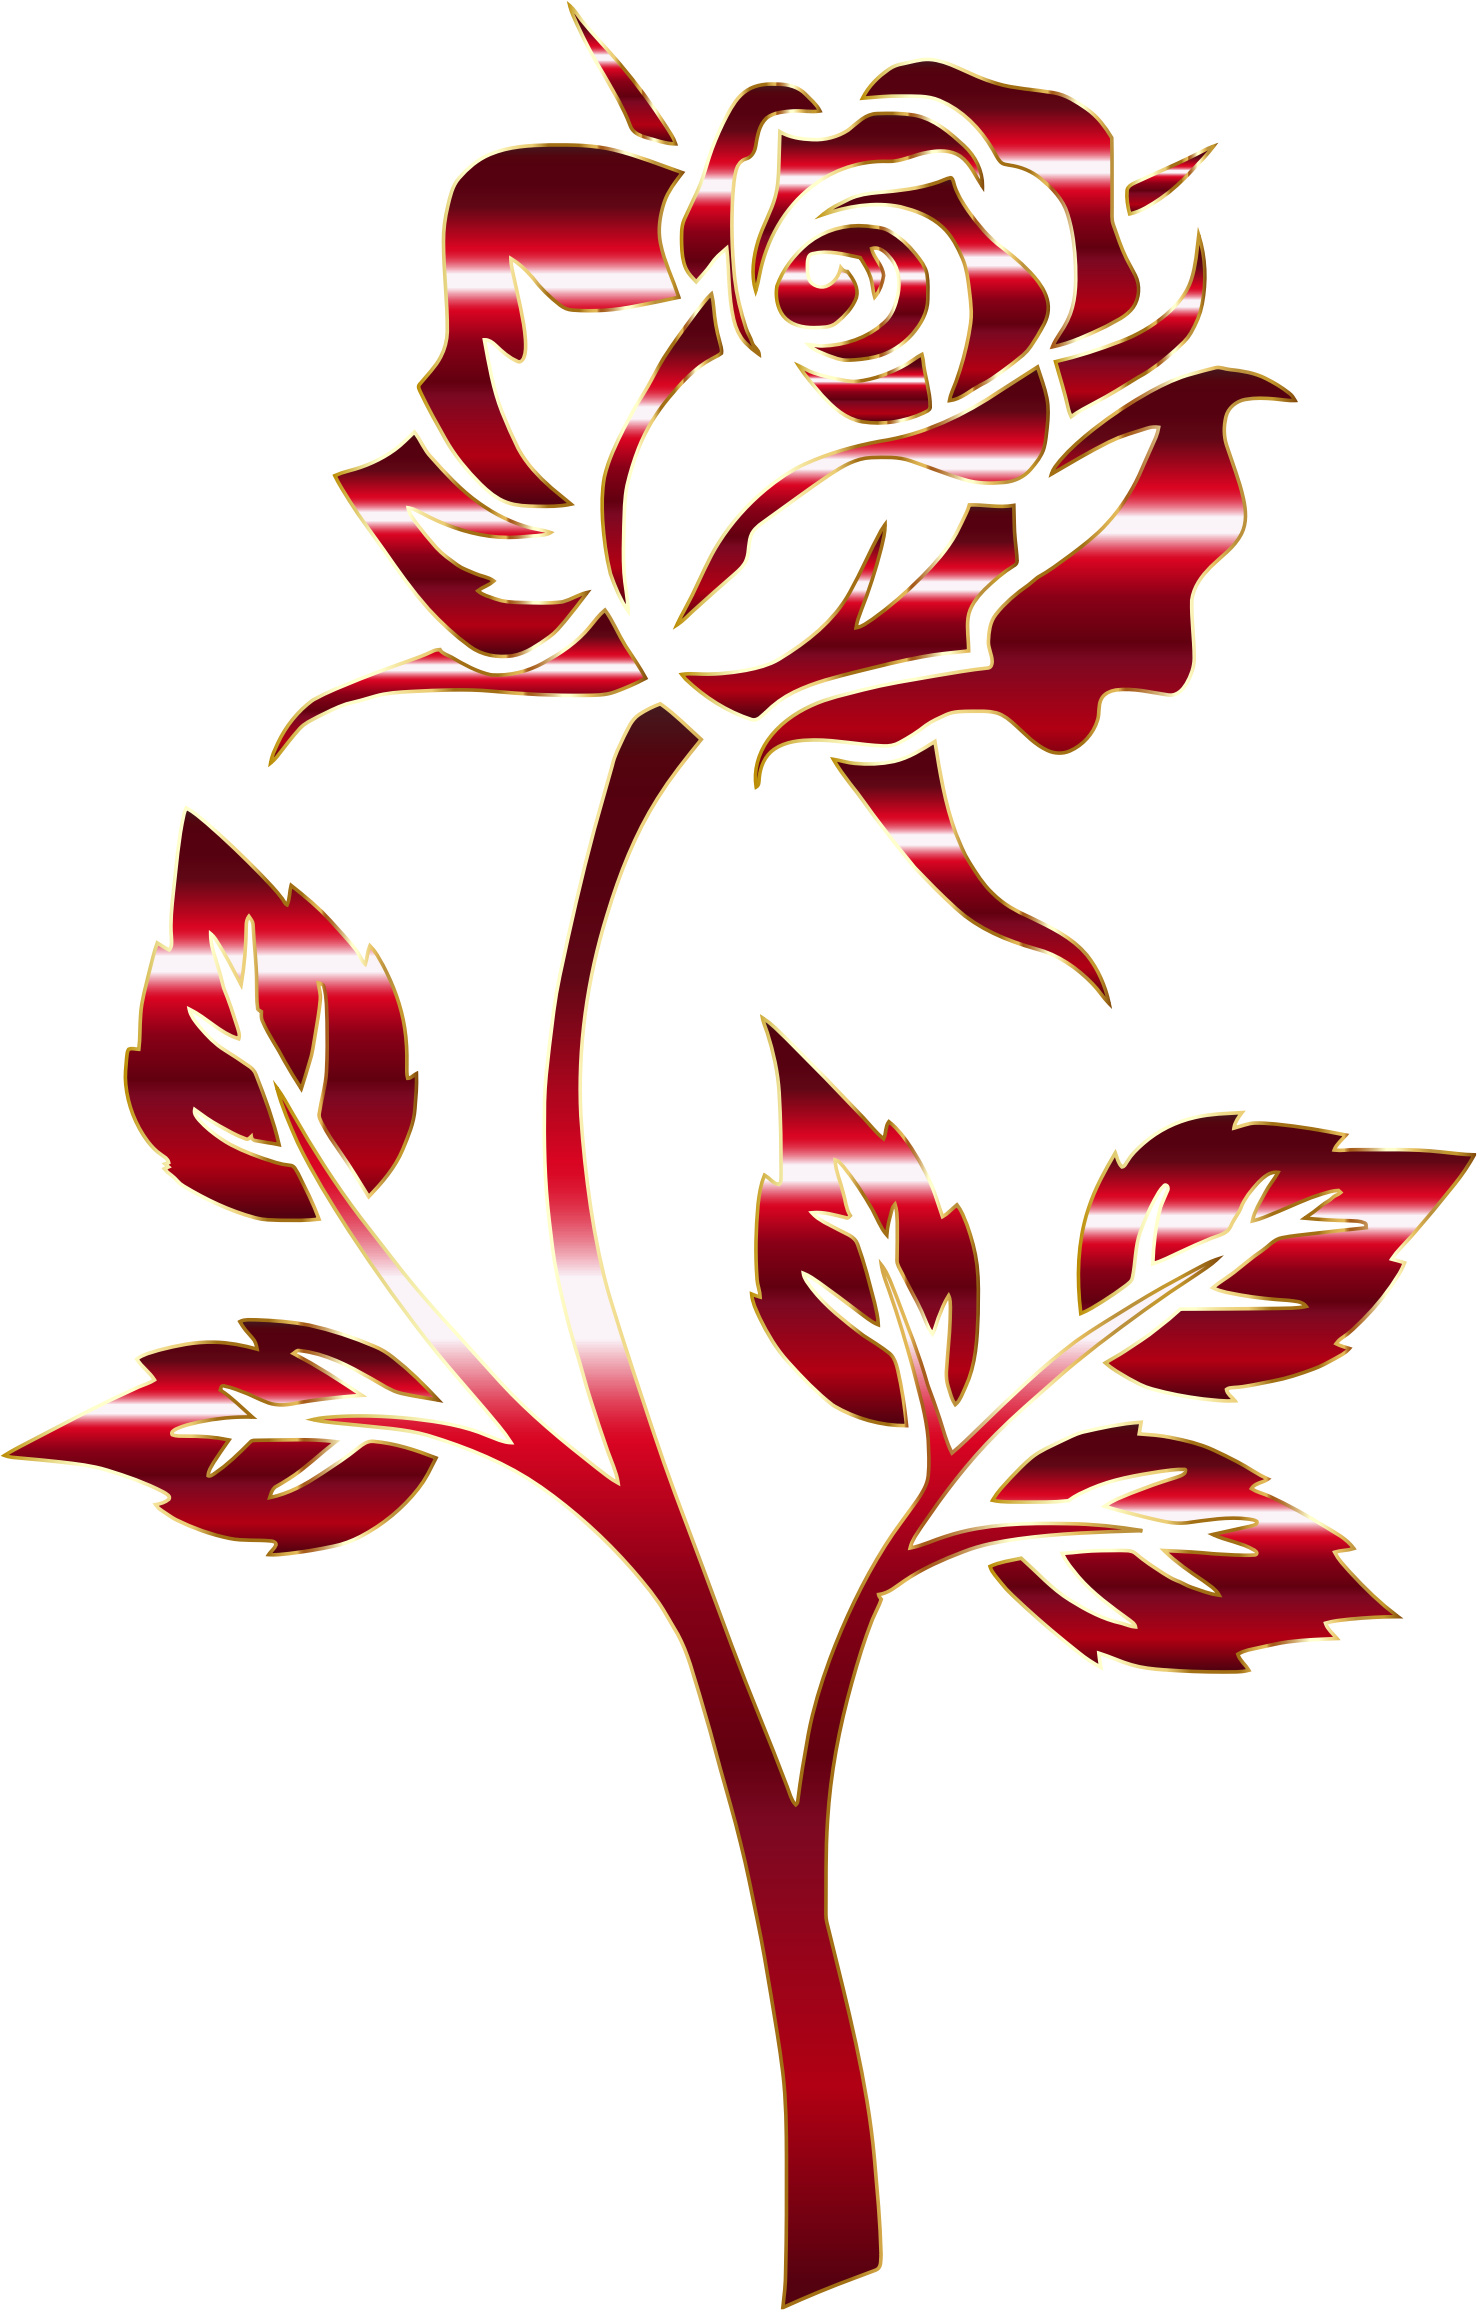 Rose clipart clear background. Crimson silhouette variation no